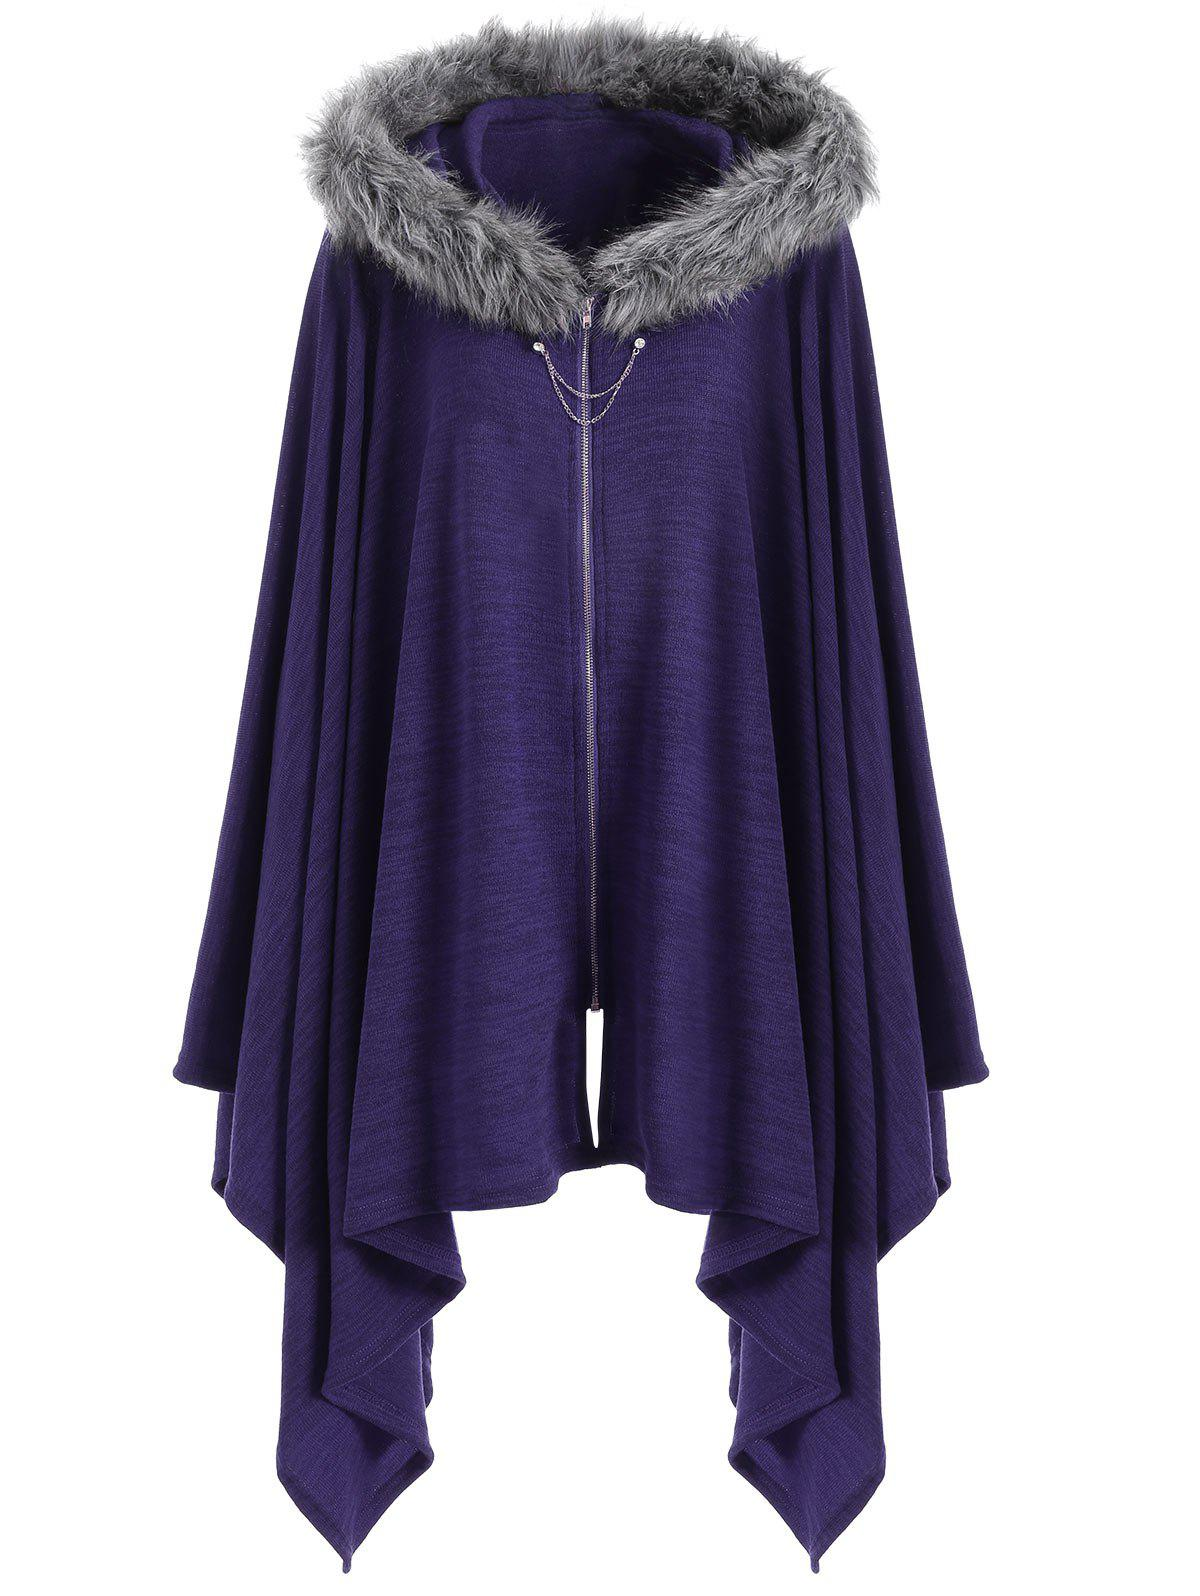 Faux Fur Insert Plus Size Asymmetric Cape CoatWOMEN<br><br>Size: 5XL; Color: PURPLE; Clothes Type: Others; Material: Polyester,Spandex; Type: Wide-waisted; Shirt Length: Regular; Sleeve Length: Full; Collar: Hooded; Pattern Type: Solid; Style: Fashion; Season: Fall,Winter; Weight: 0.4700kg; Package Contents: 1 x Coat;